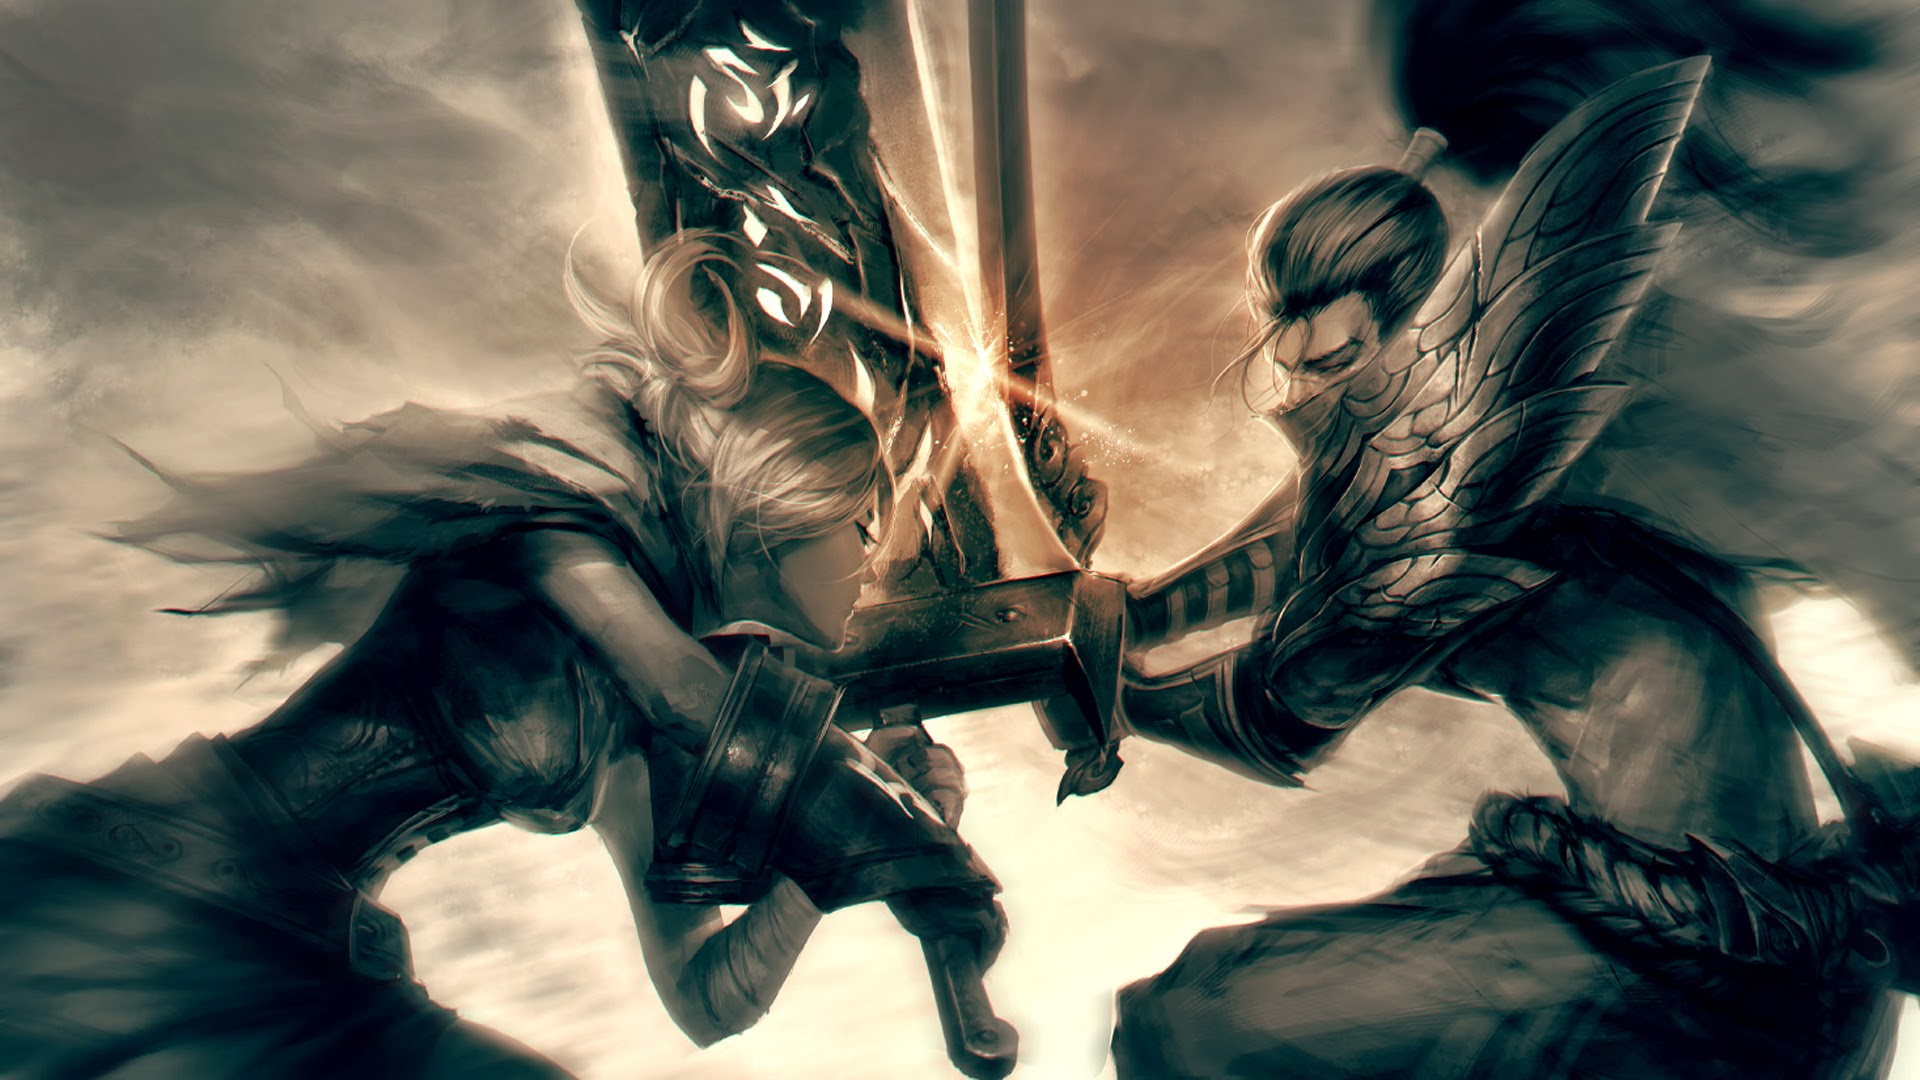 riven-vs-yasuo-league-of-legends-hd-wallpaper-ae rie-1920x1080 jpgYasuo League Of Legends